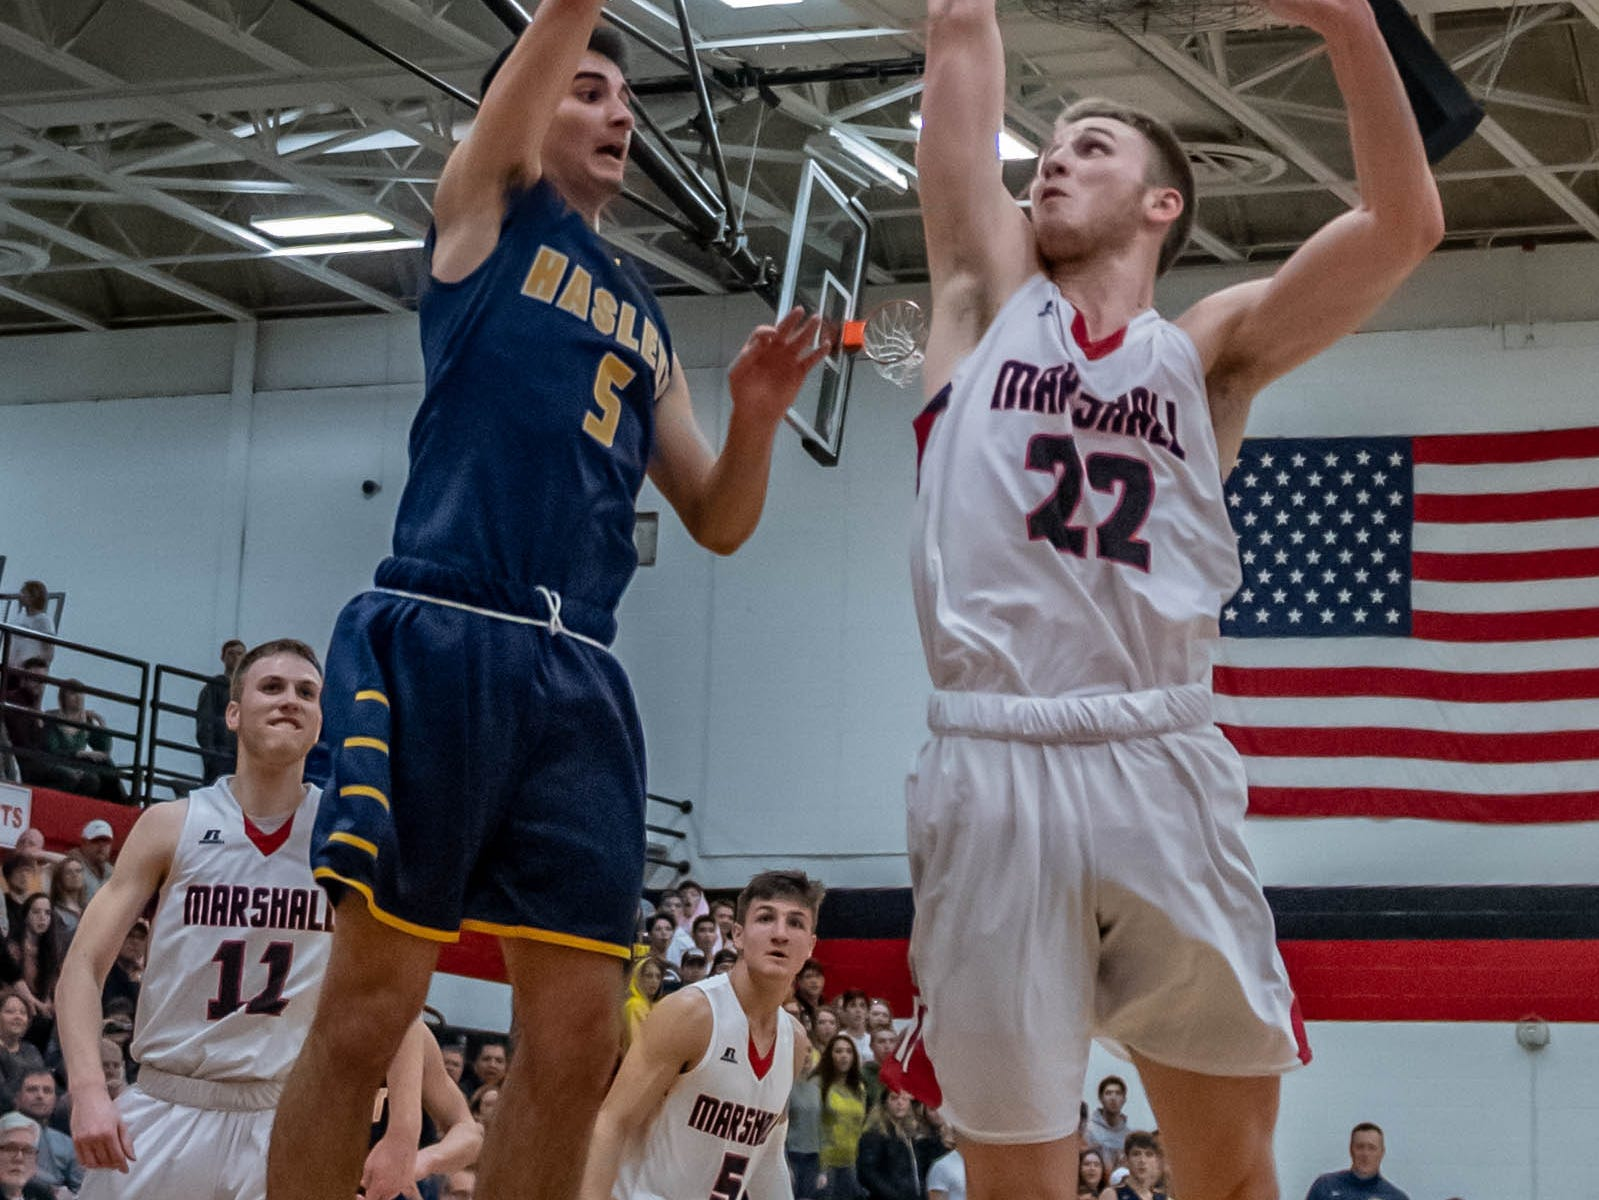 Haslett's Mitchell Mowid (5) goes for the basket while being guarded by Marshall's Jeremy Luciani (22) during first half action of regional playoffs Tuesday evening.